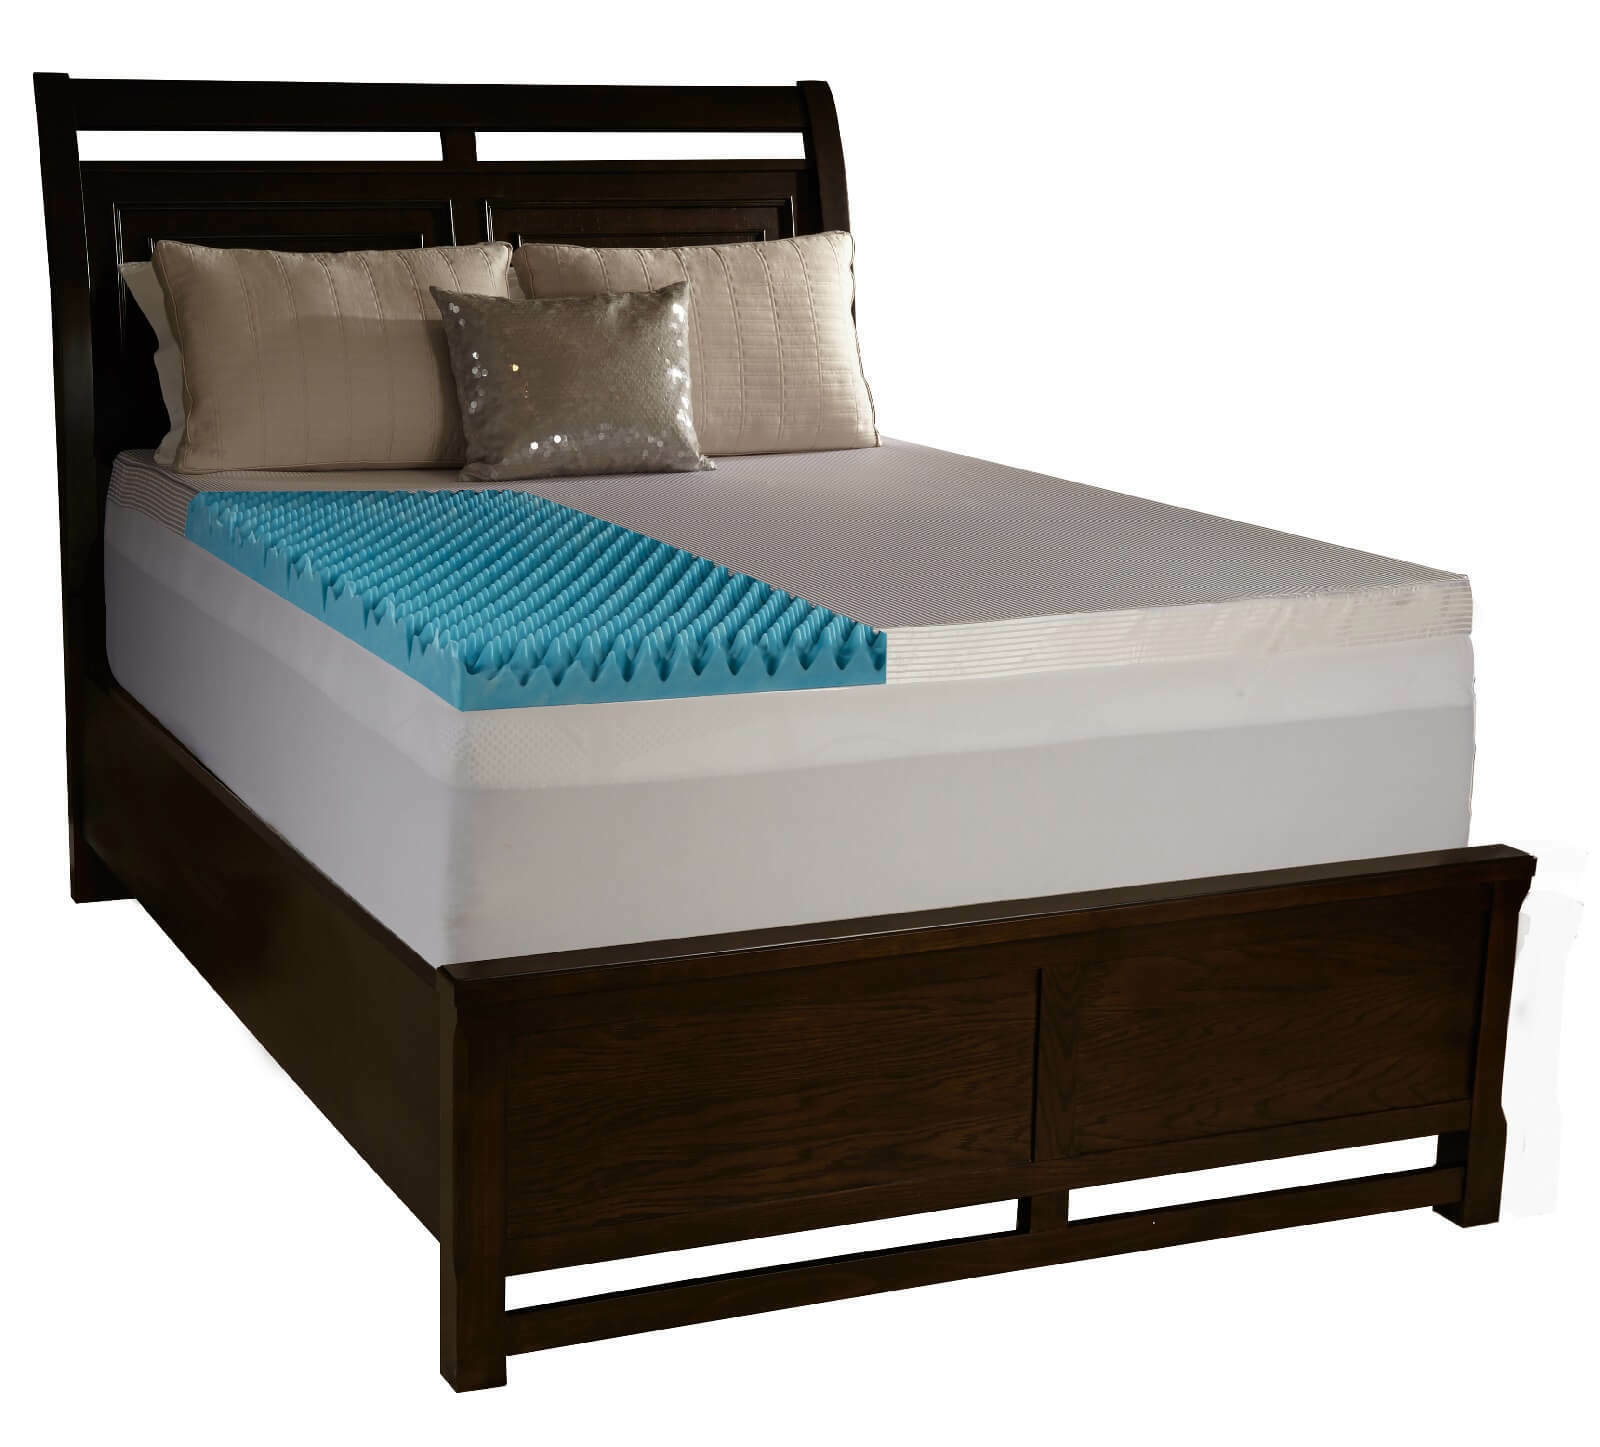 4  Full Egg Crate Foam Mattress Topper Gel Infused Memory Bed Pad With Cover